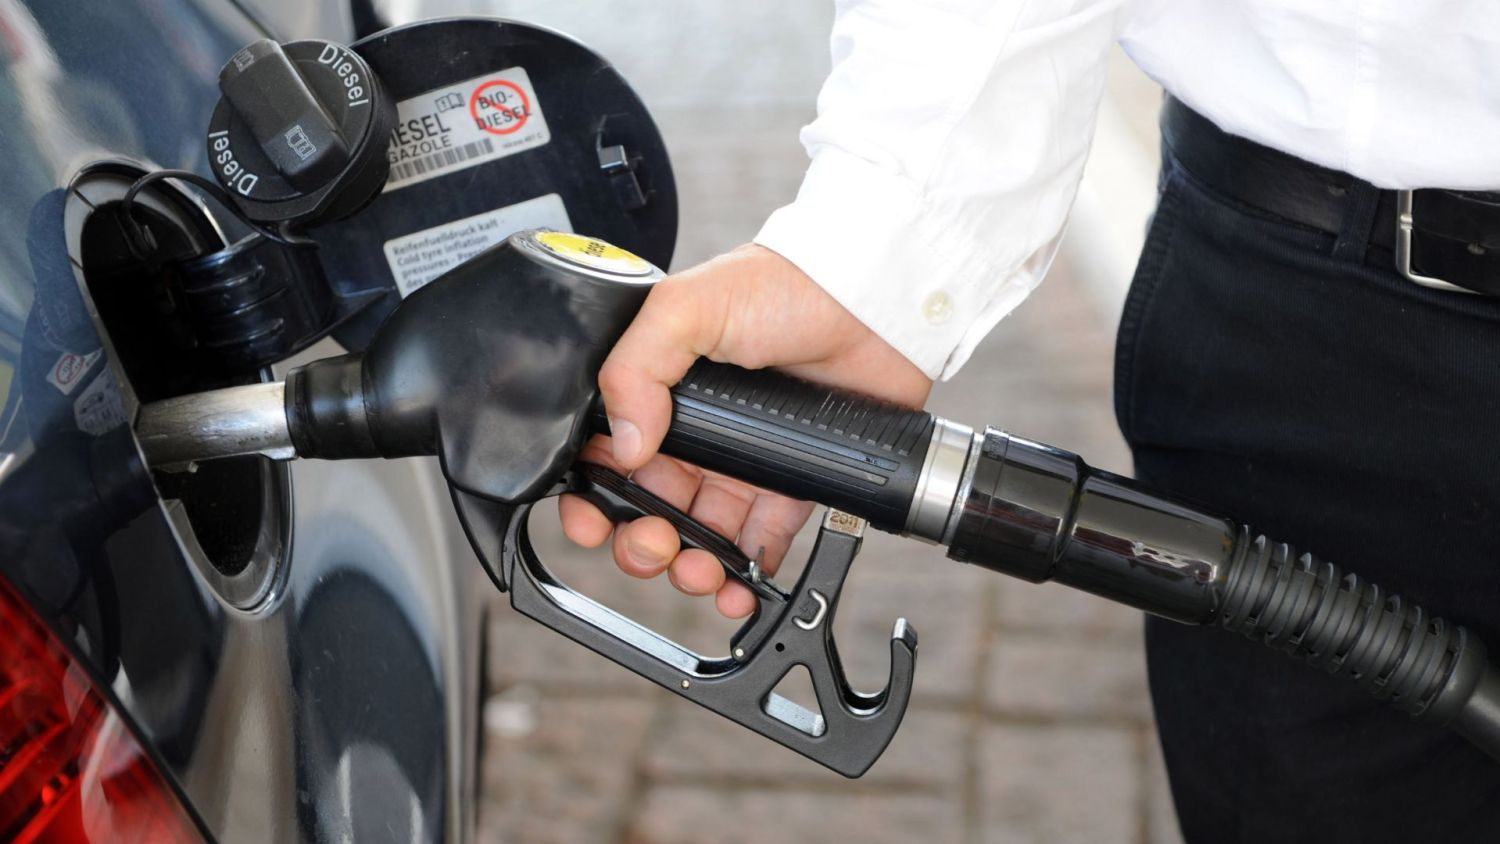 fuel price drops